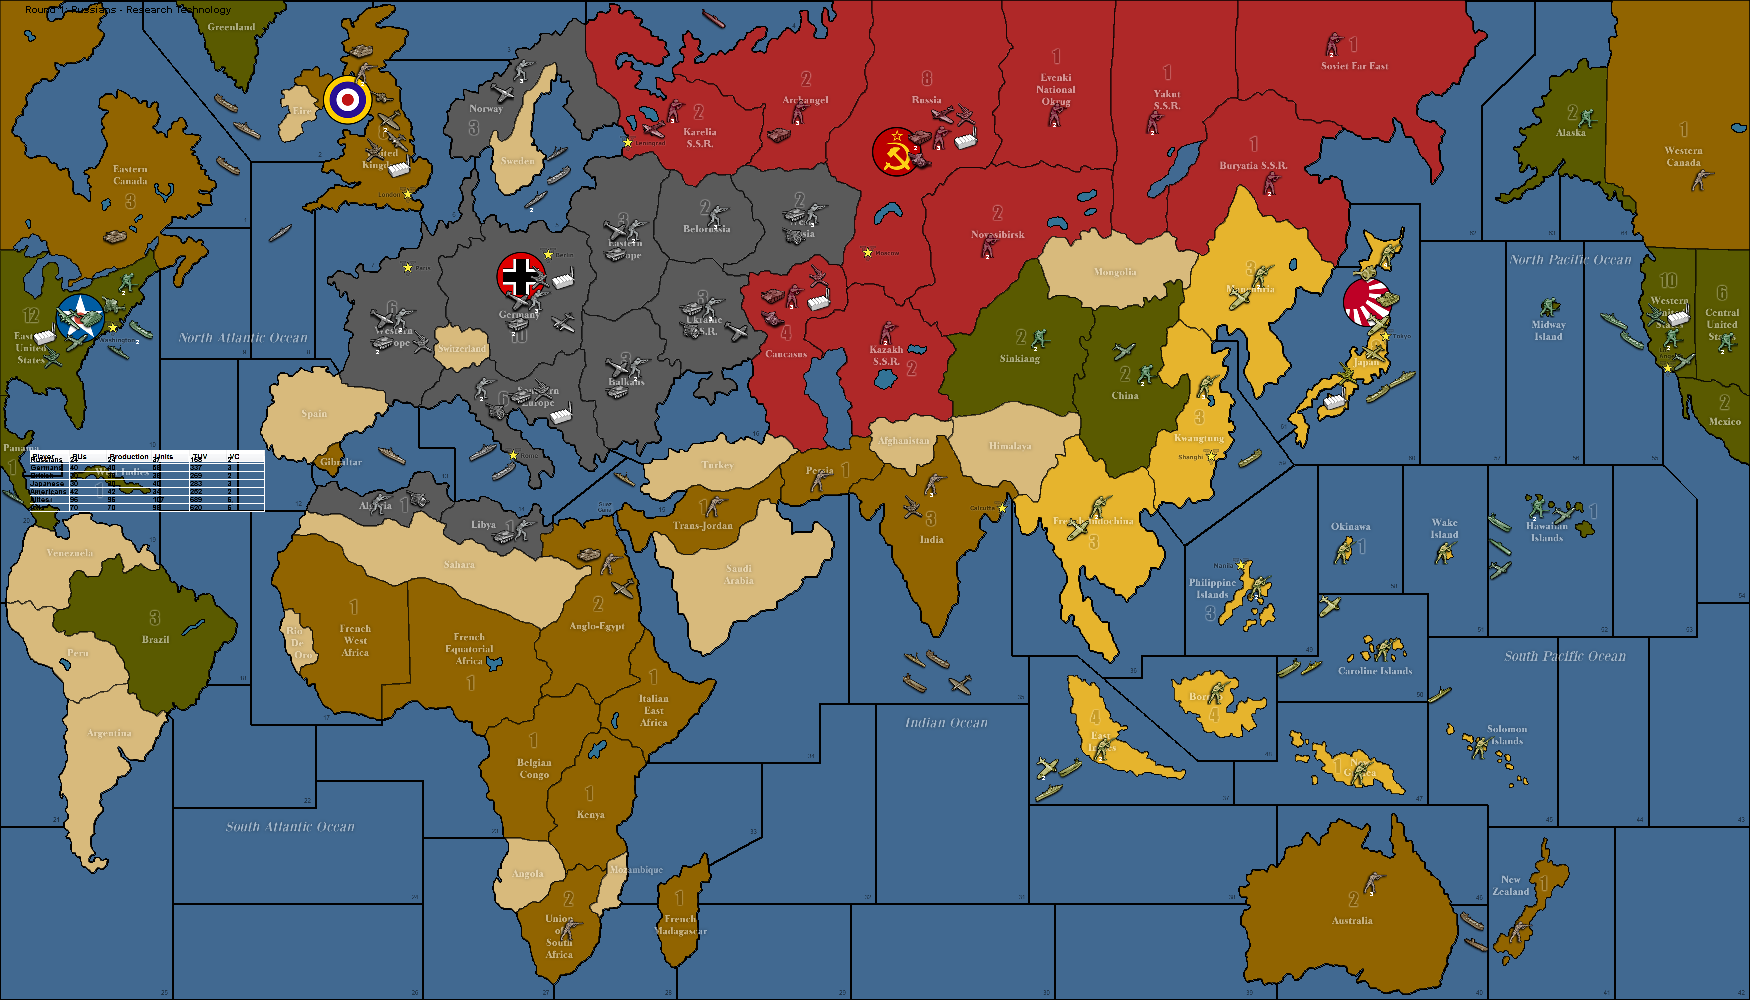 World war ii revised axis allies wiki fandom powered by wikia world war ii revised gumiabroncs Choice Image